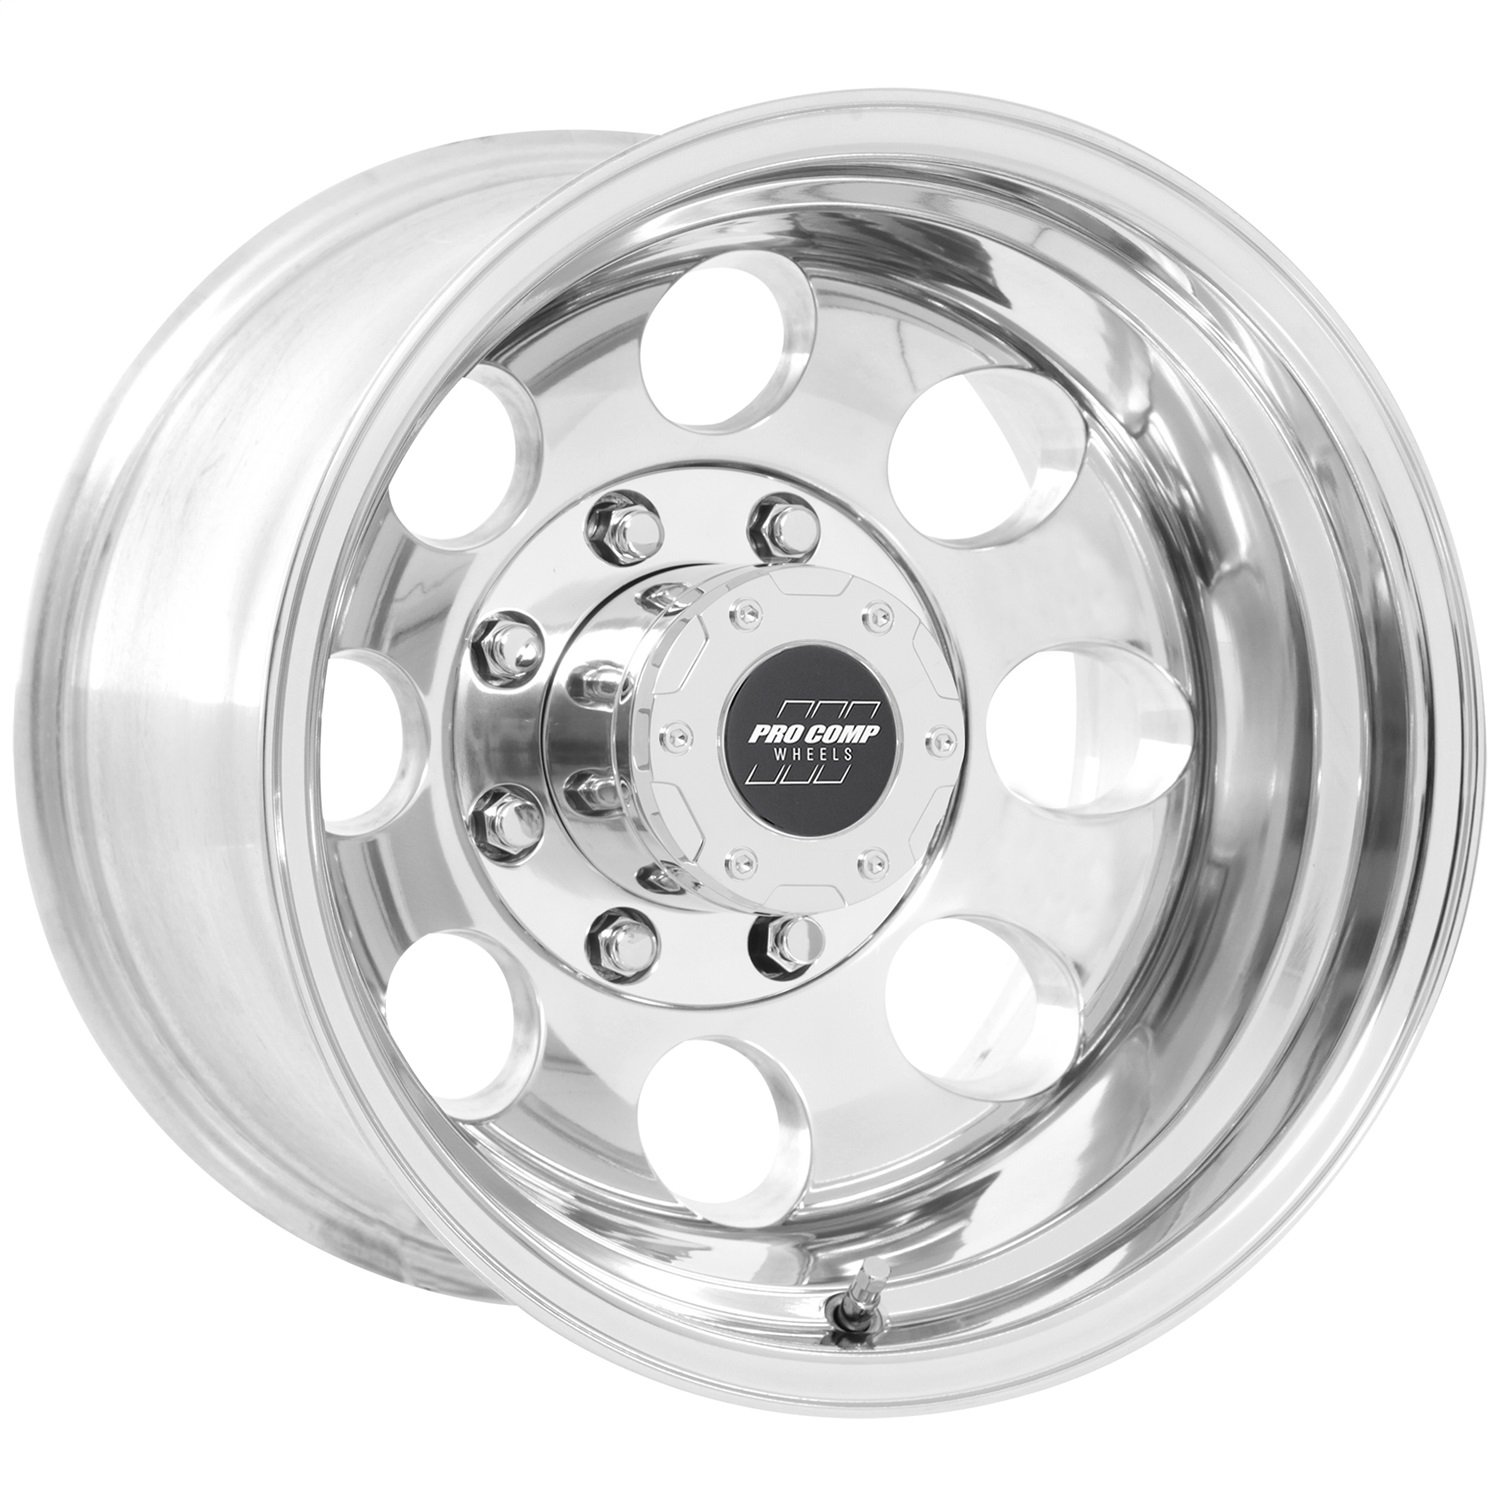 Pro Comp Alloys 1069 Polished Wheel (16x8''/8x6.5'')